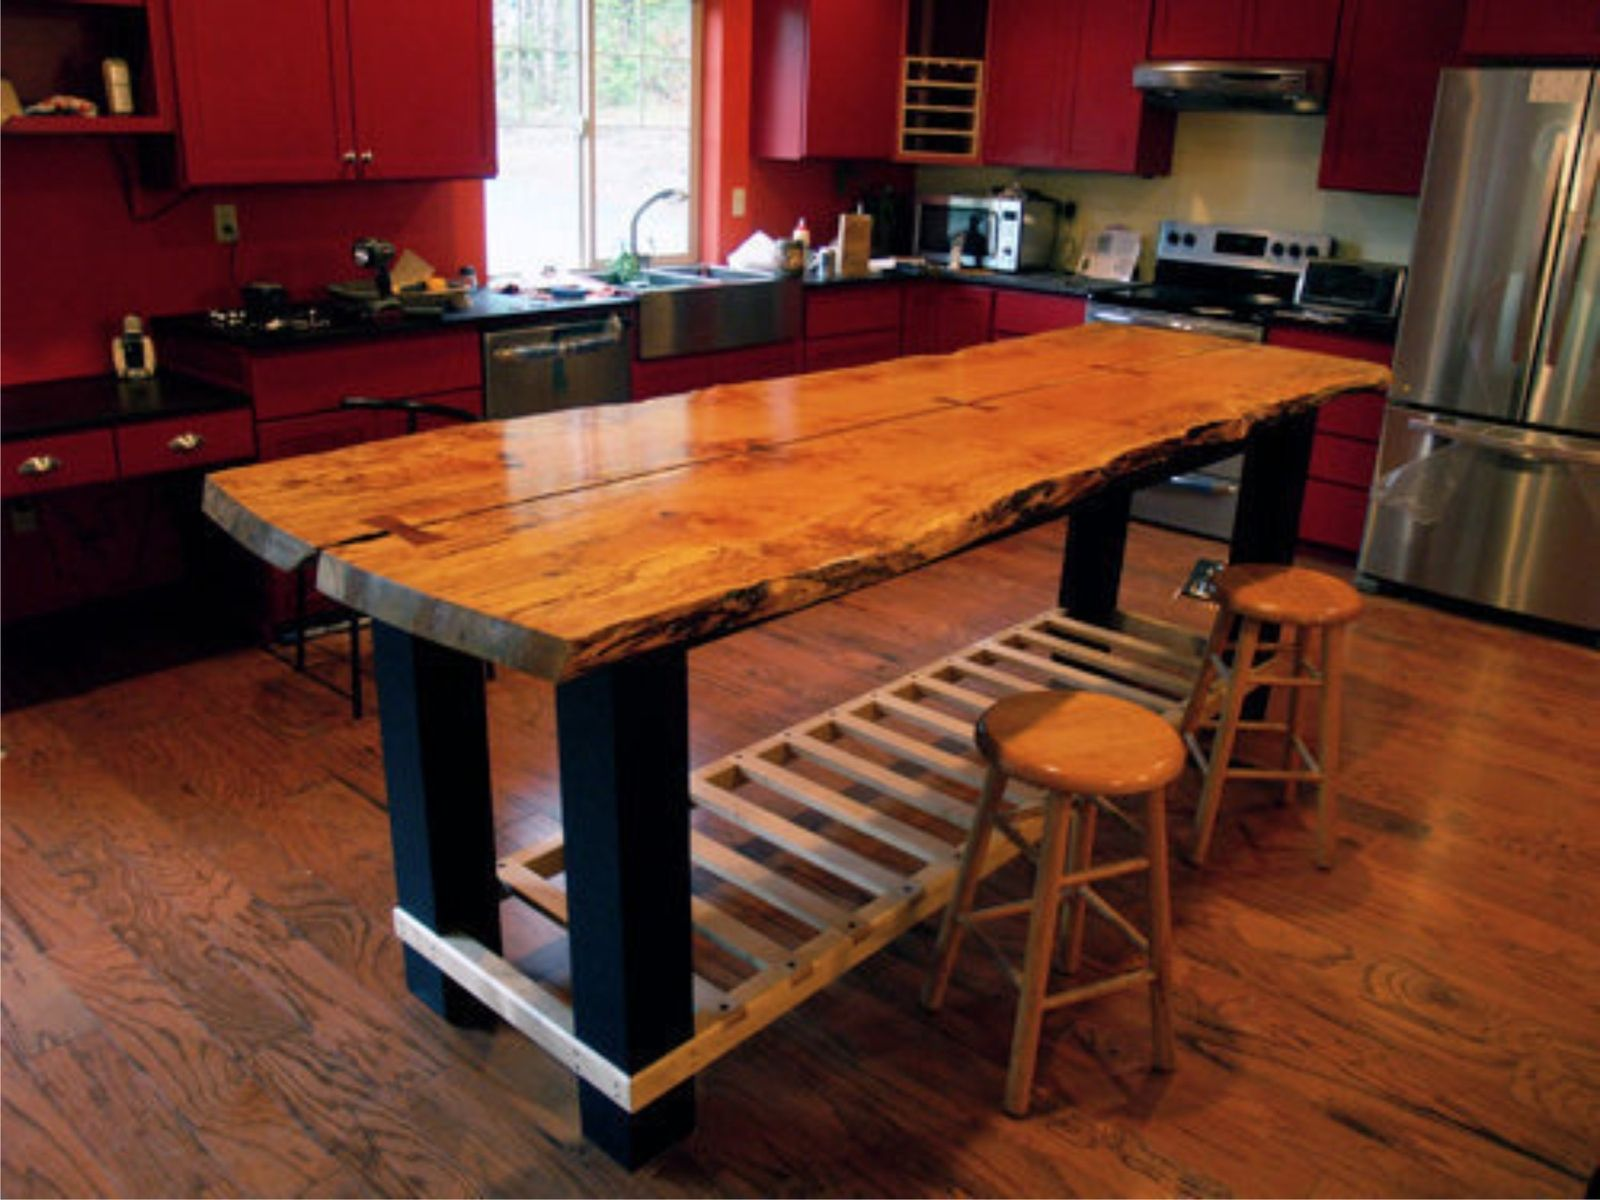 Kitchen Floor Plans For Small Kitchens Handmade Custom Island Table By Jeffrey Coleson Art And